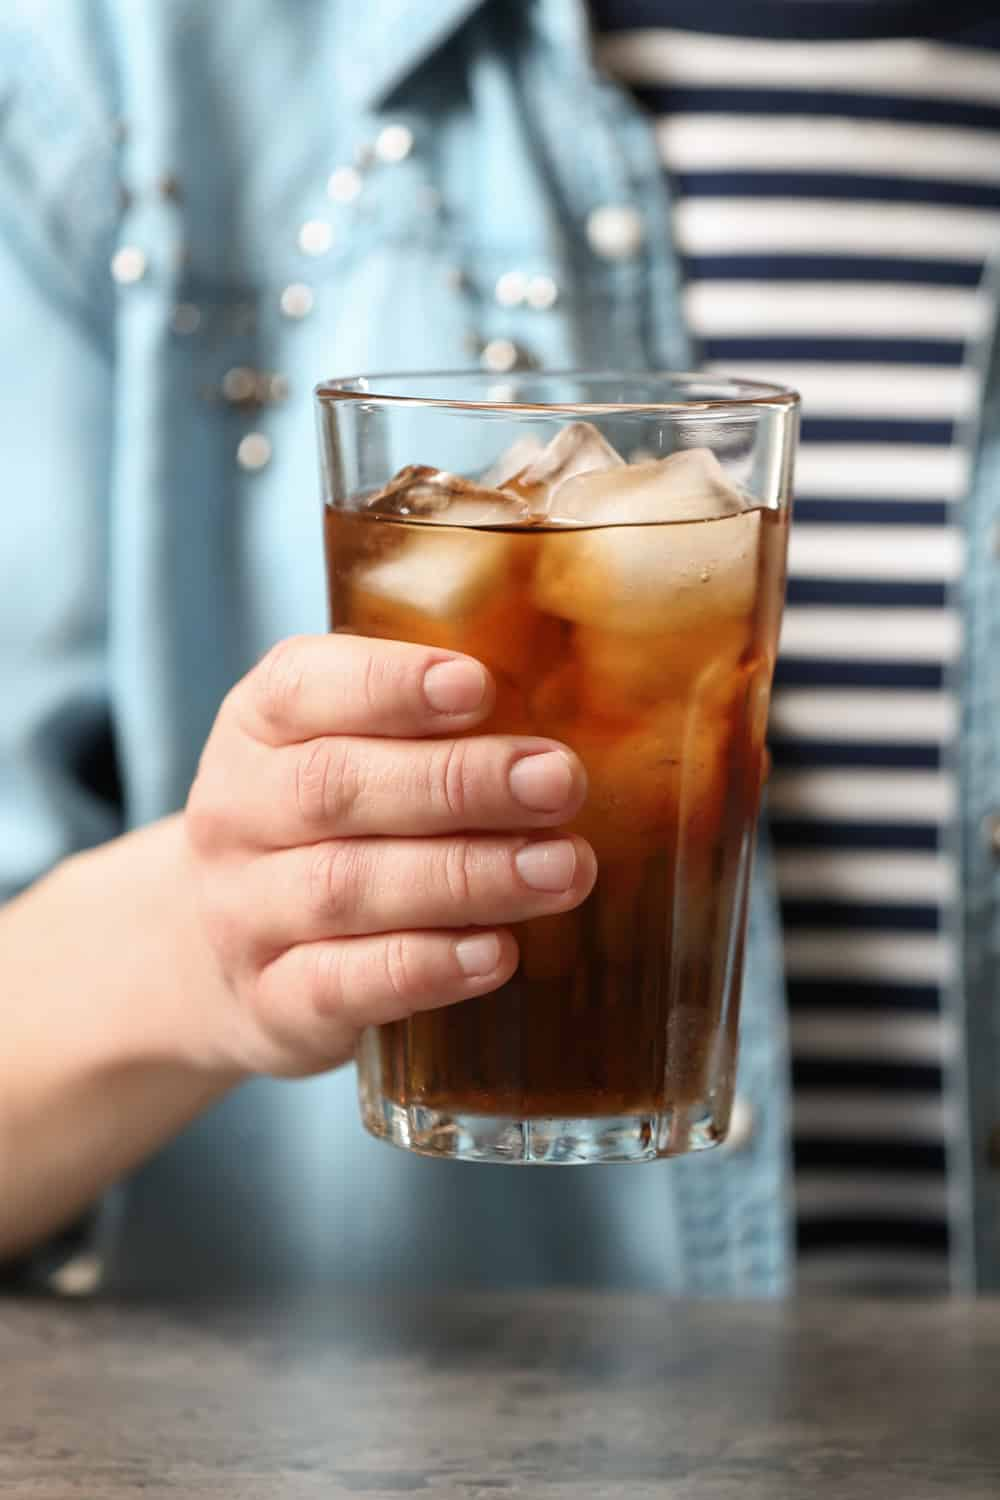 4 Tips To Tell If Soda Has Gone Bad